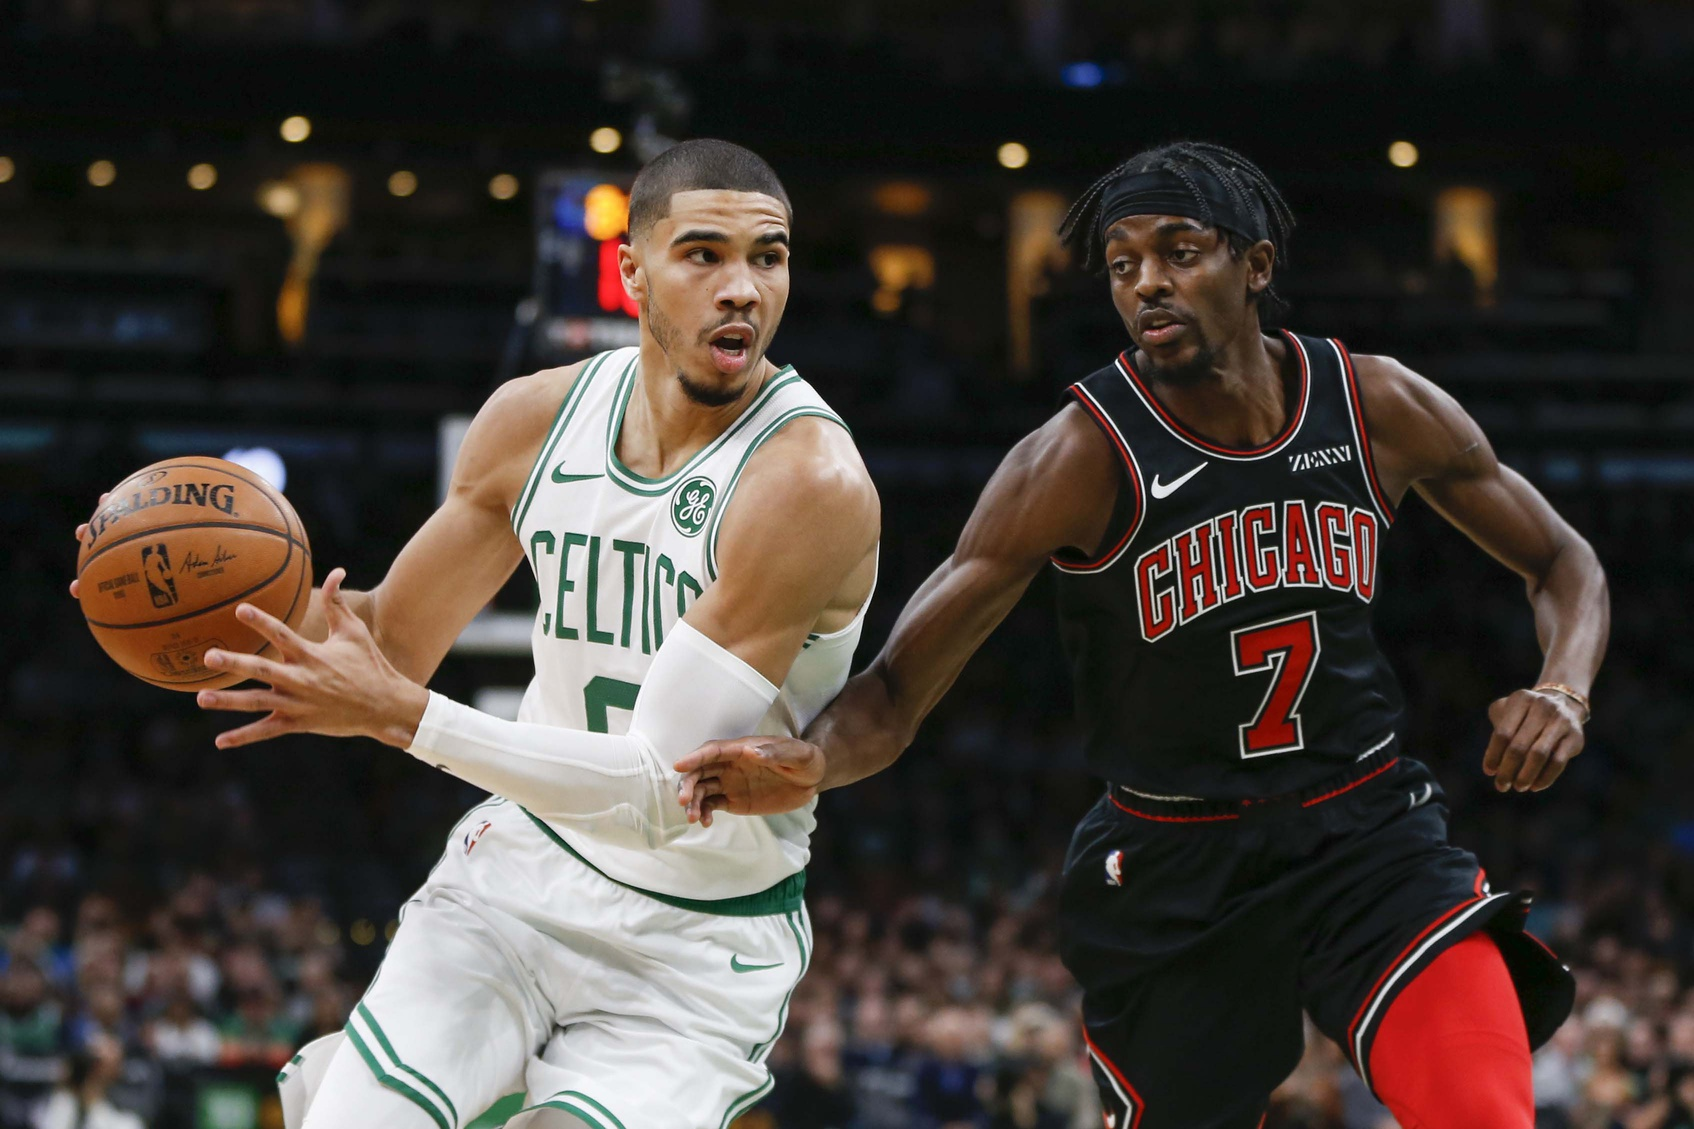 Boston Celtics huge second quarter proves an NBA cliche'